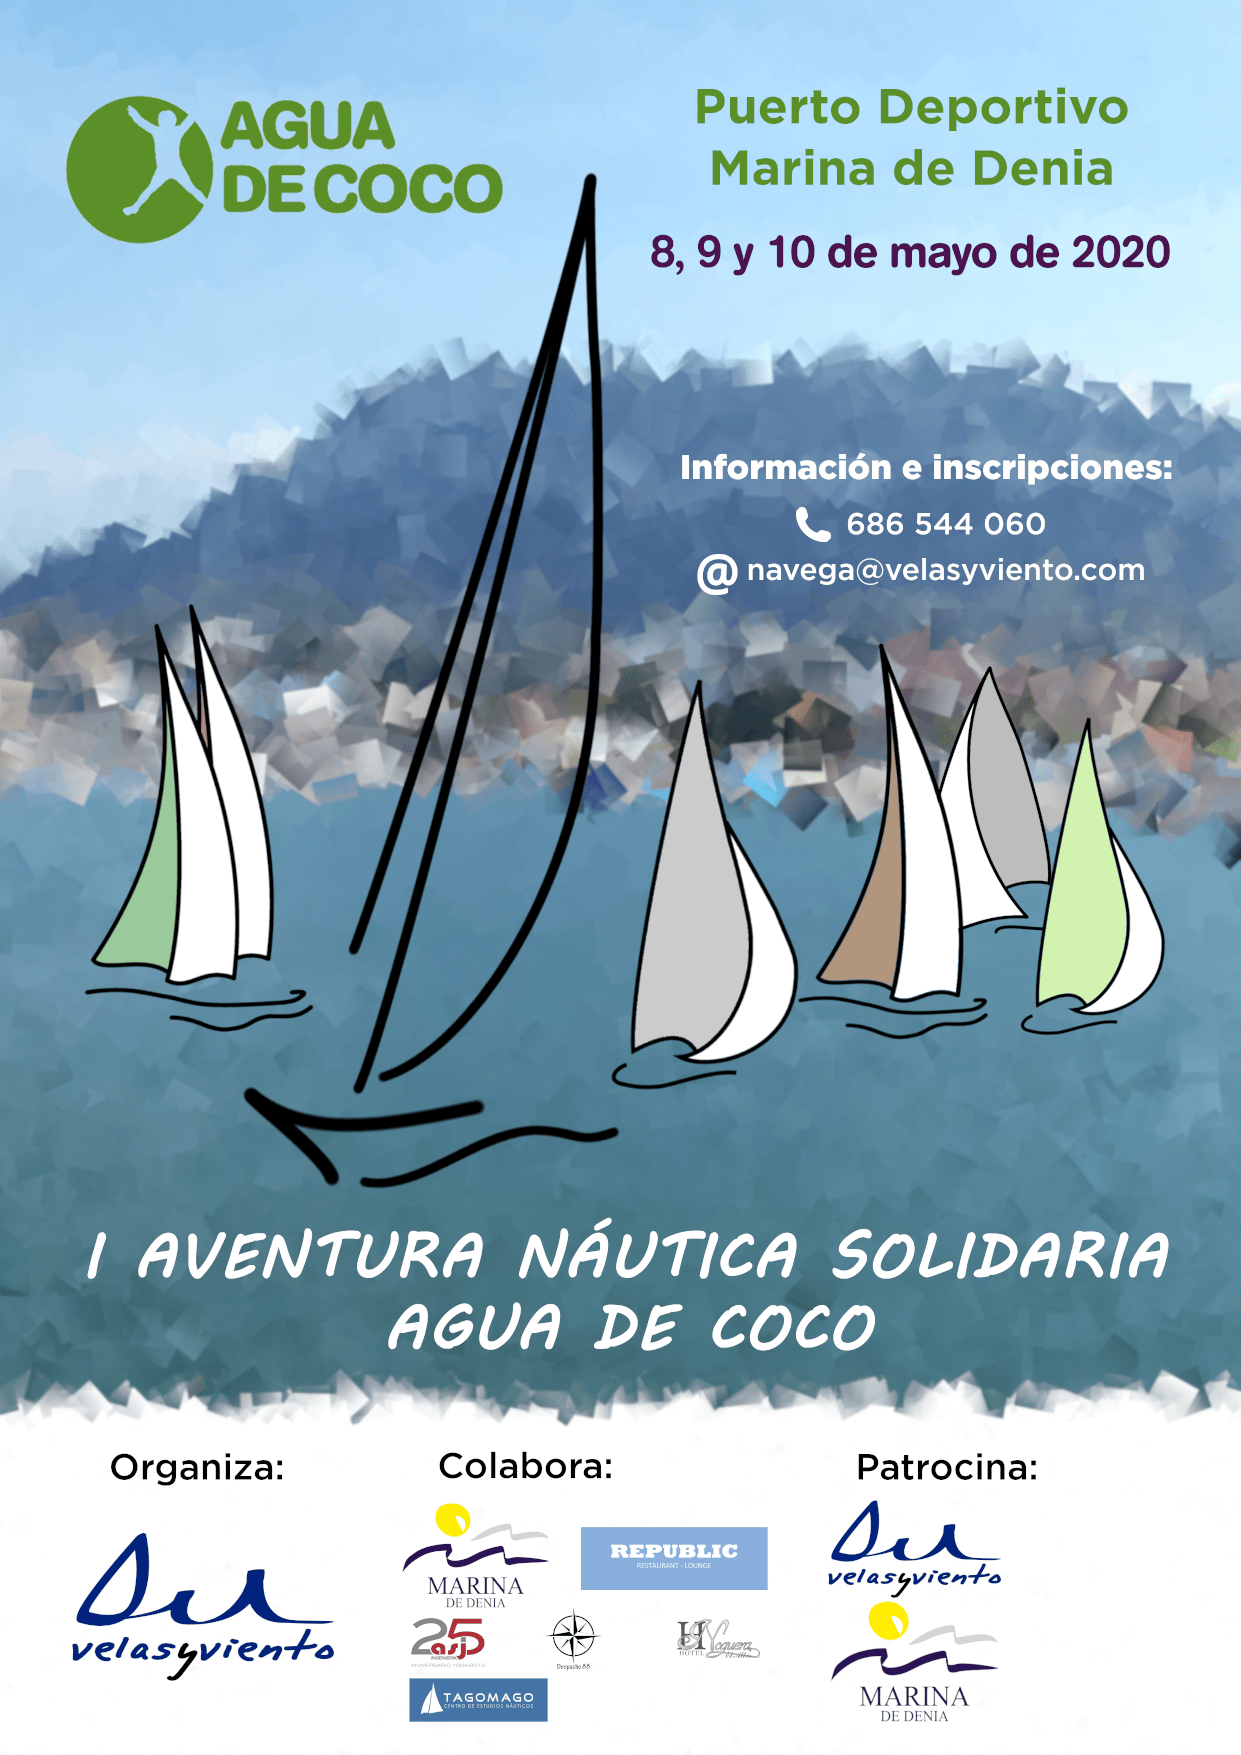 Solidarity Nautical Adventure Poster